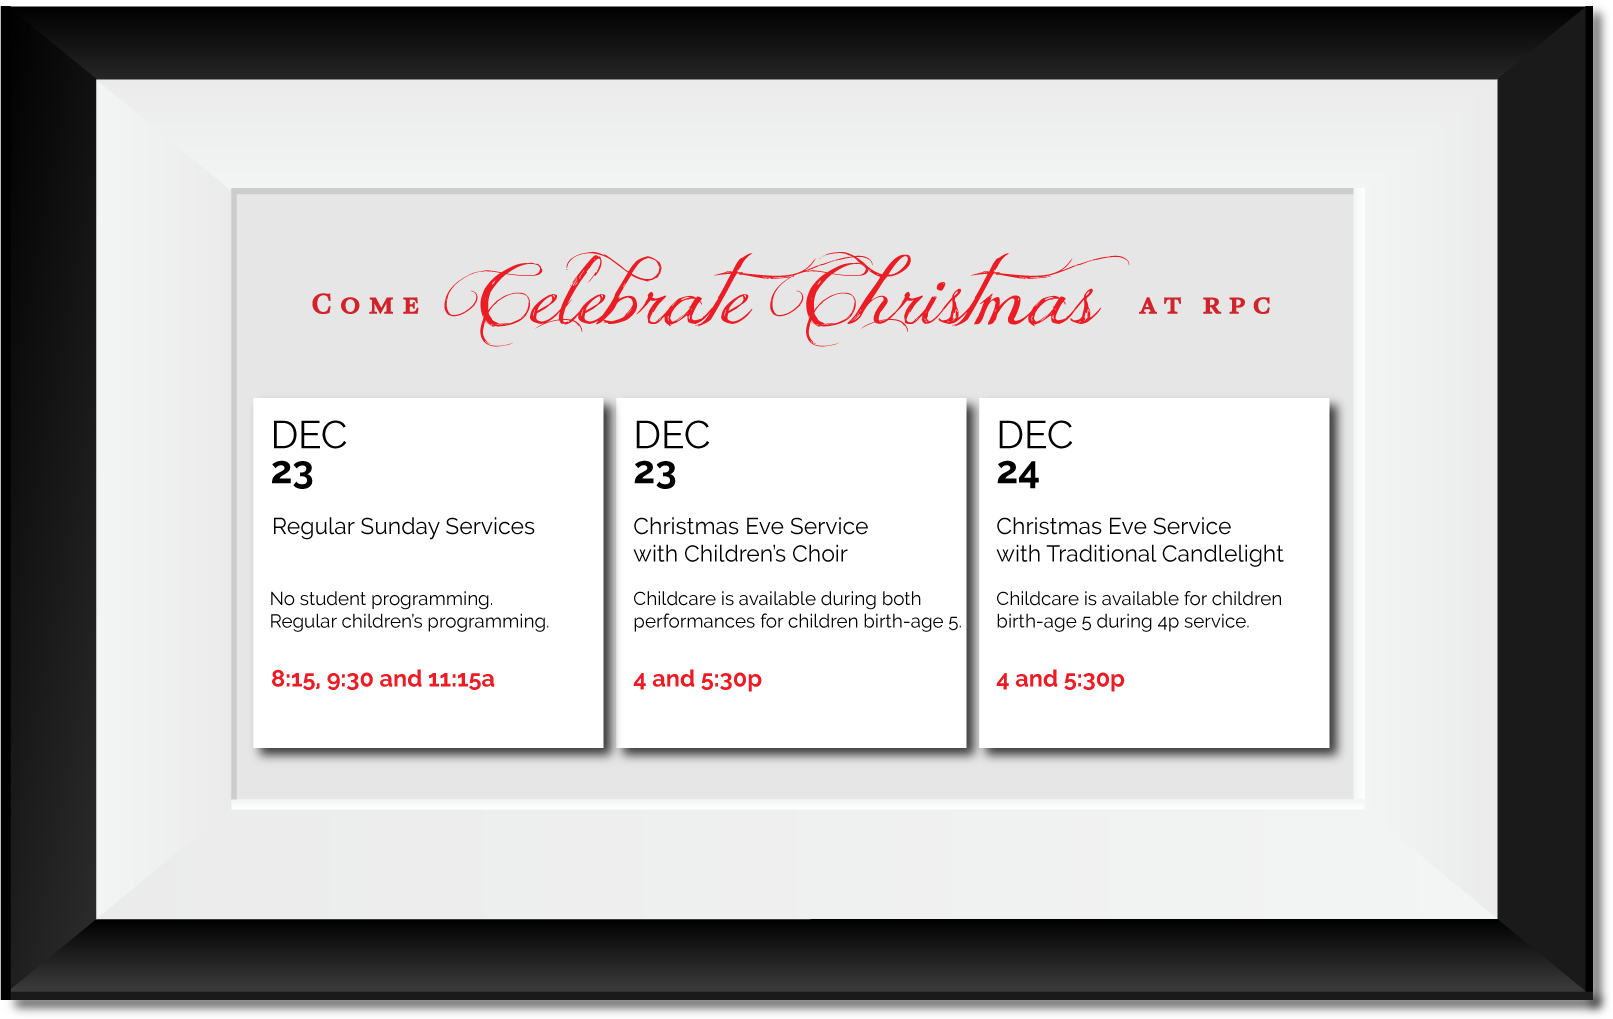 Come-Celebrate-Christmas-at-RPC